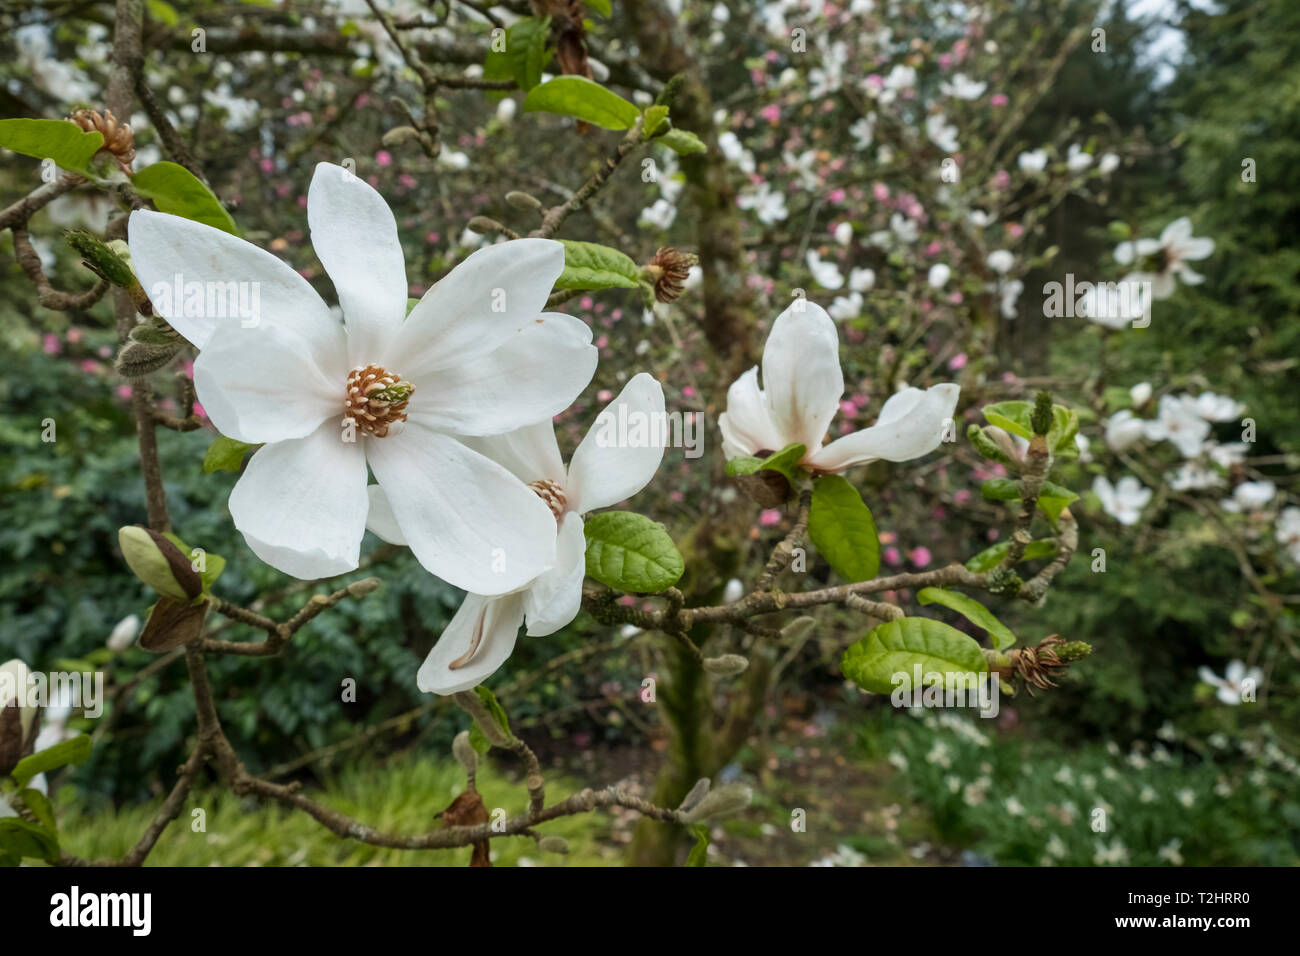 Star Magnolia, Magnolia Stellata, white flowers during spring, England, UK Stock Photo